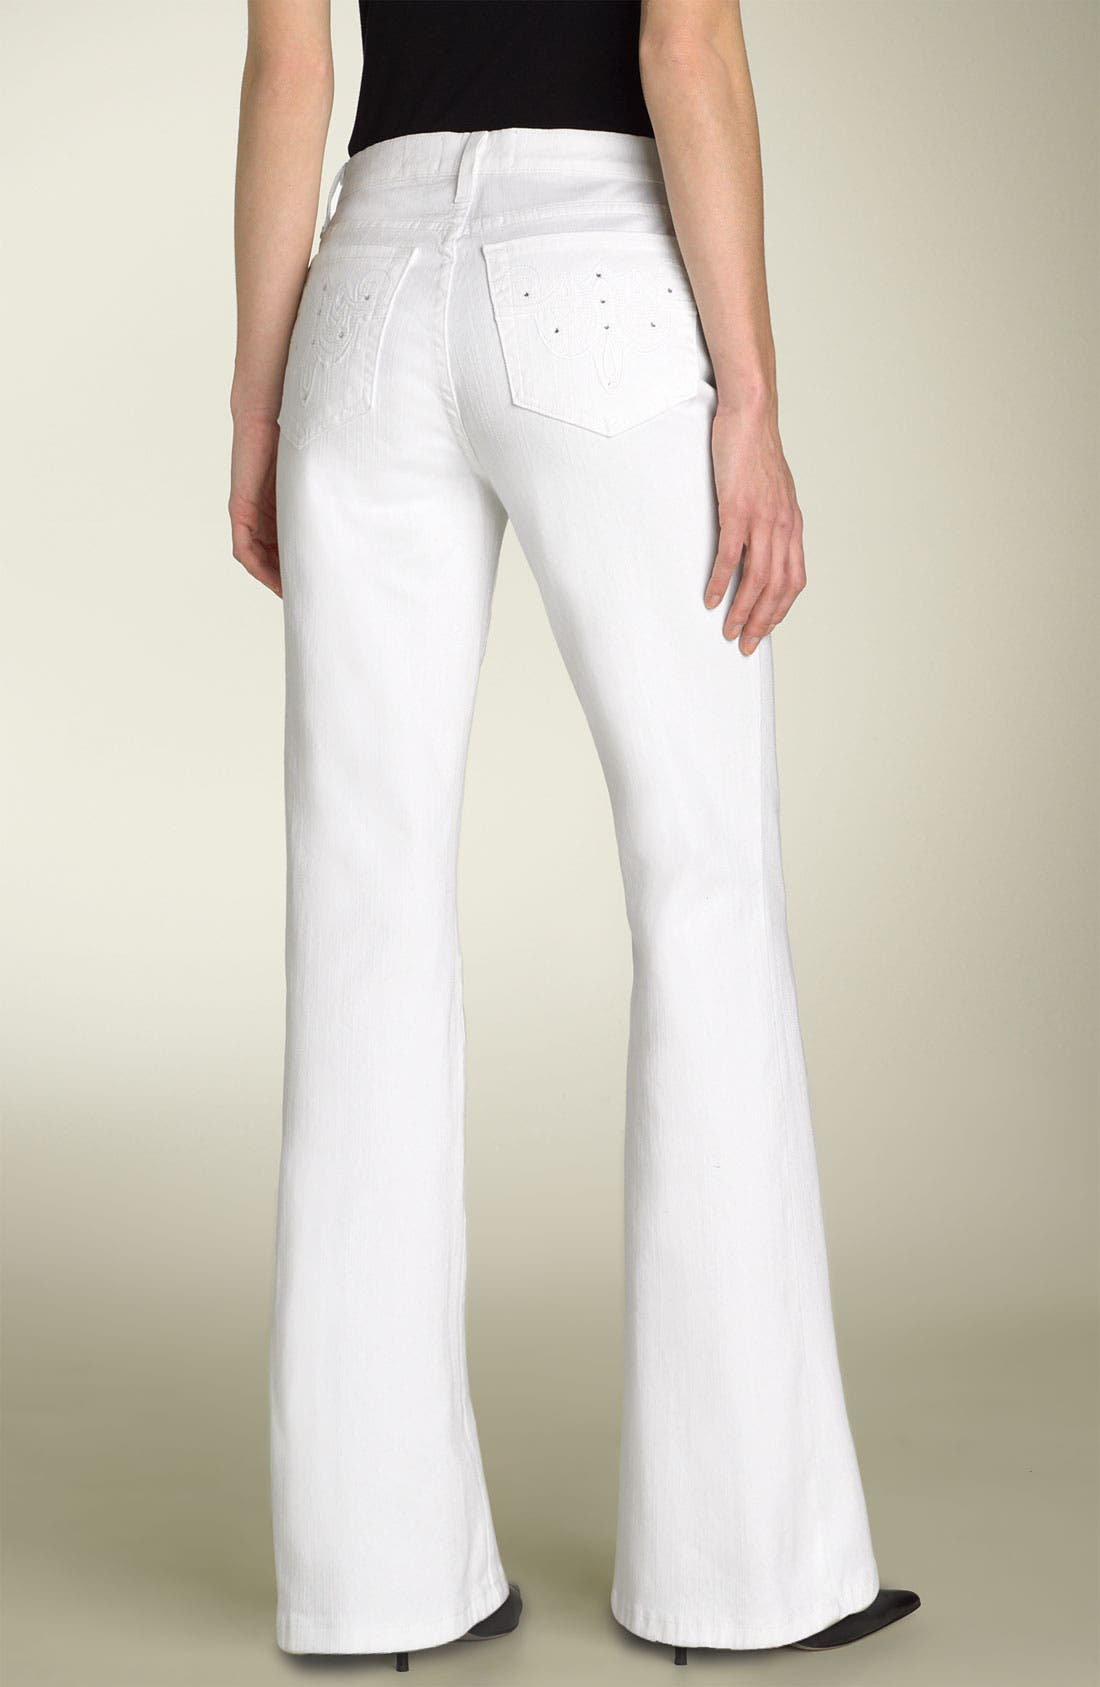 Main Image - Not Your Daughter's Jeans® Tummy Tuck® Rhinestone Bootcut Jeans (Petite)